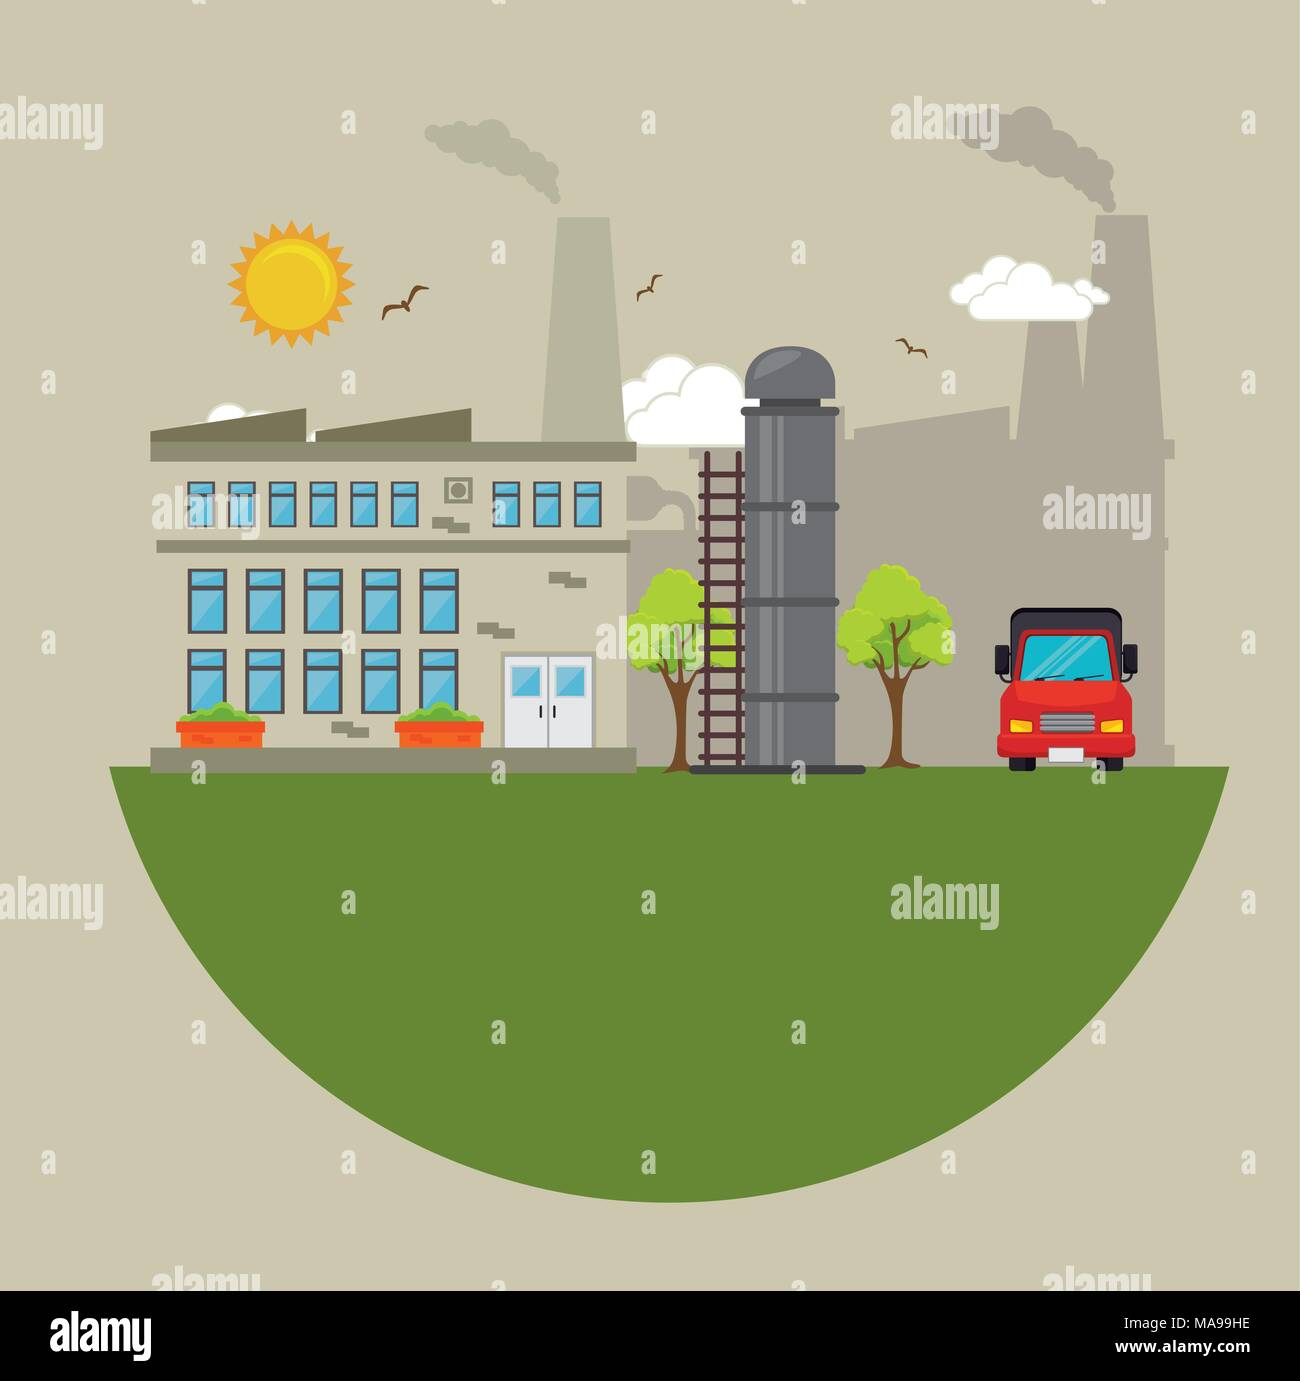 Factories and industries graphic design, vector illustration eps10 - Stock Vector